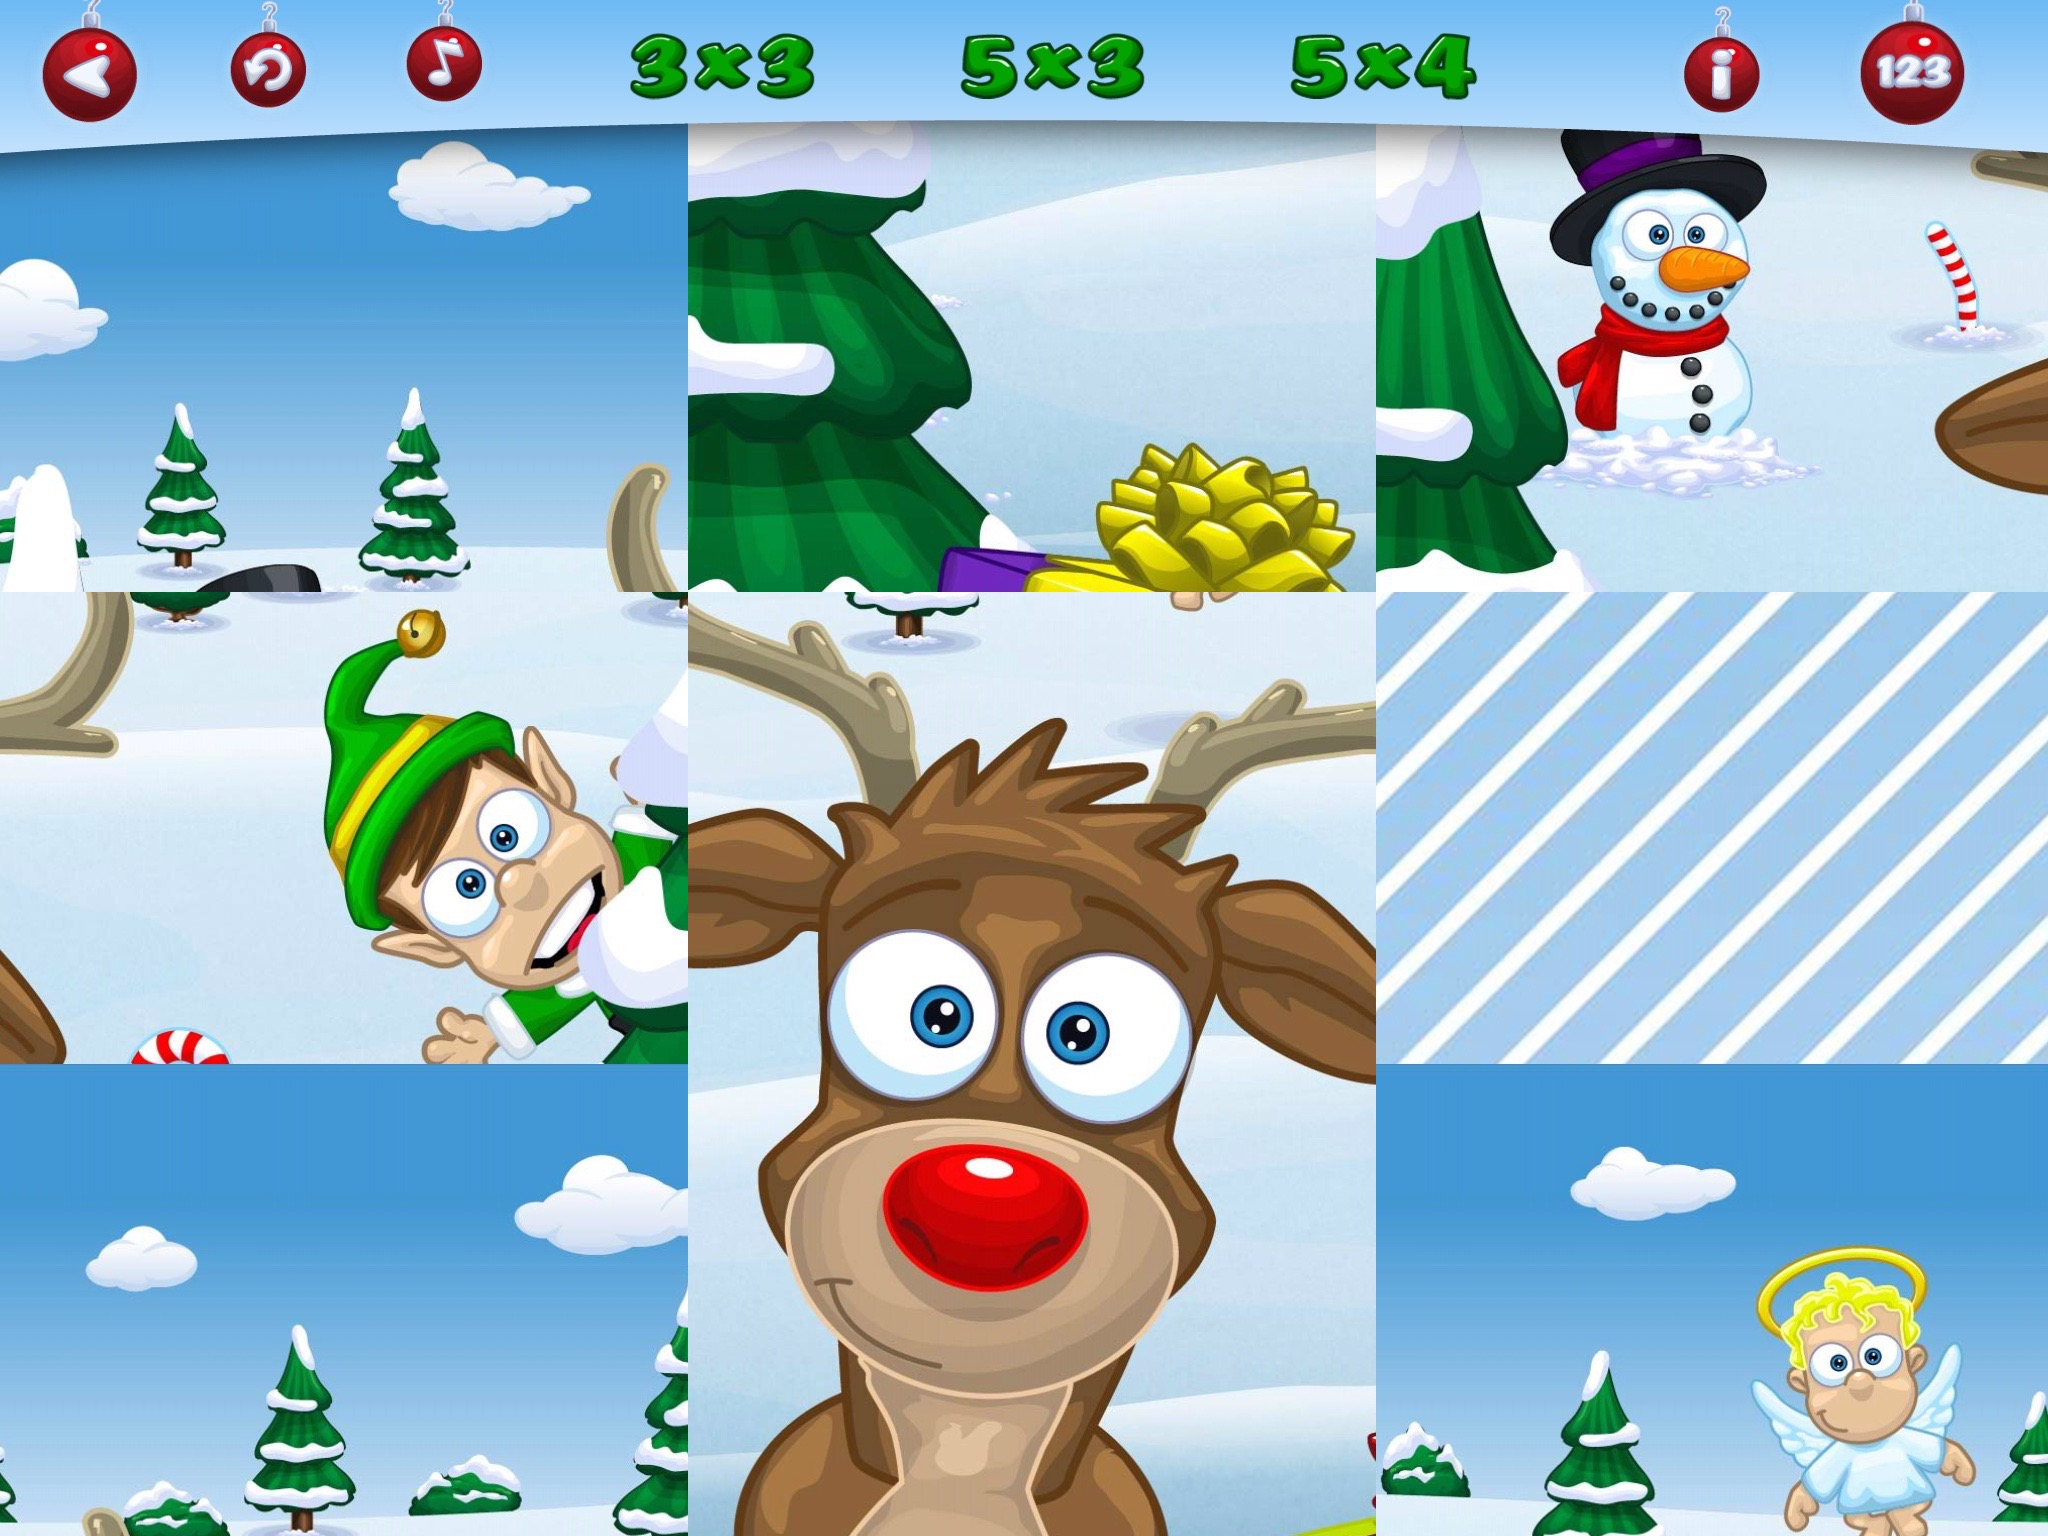 Feiertag_2_App_For_Kinder_Jan_Essig_XMAS_Games_1